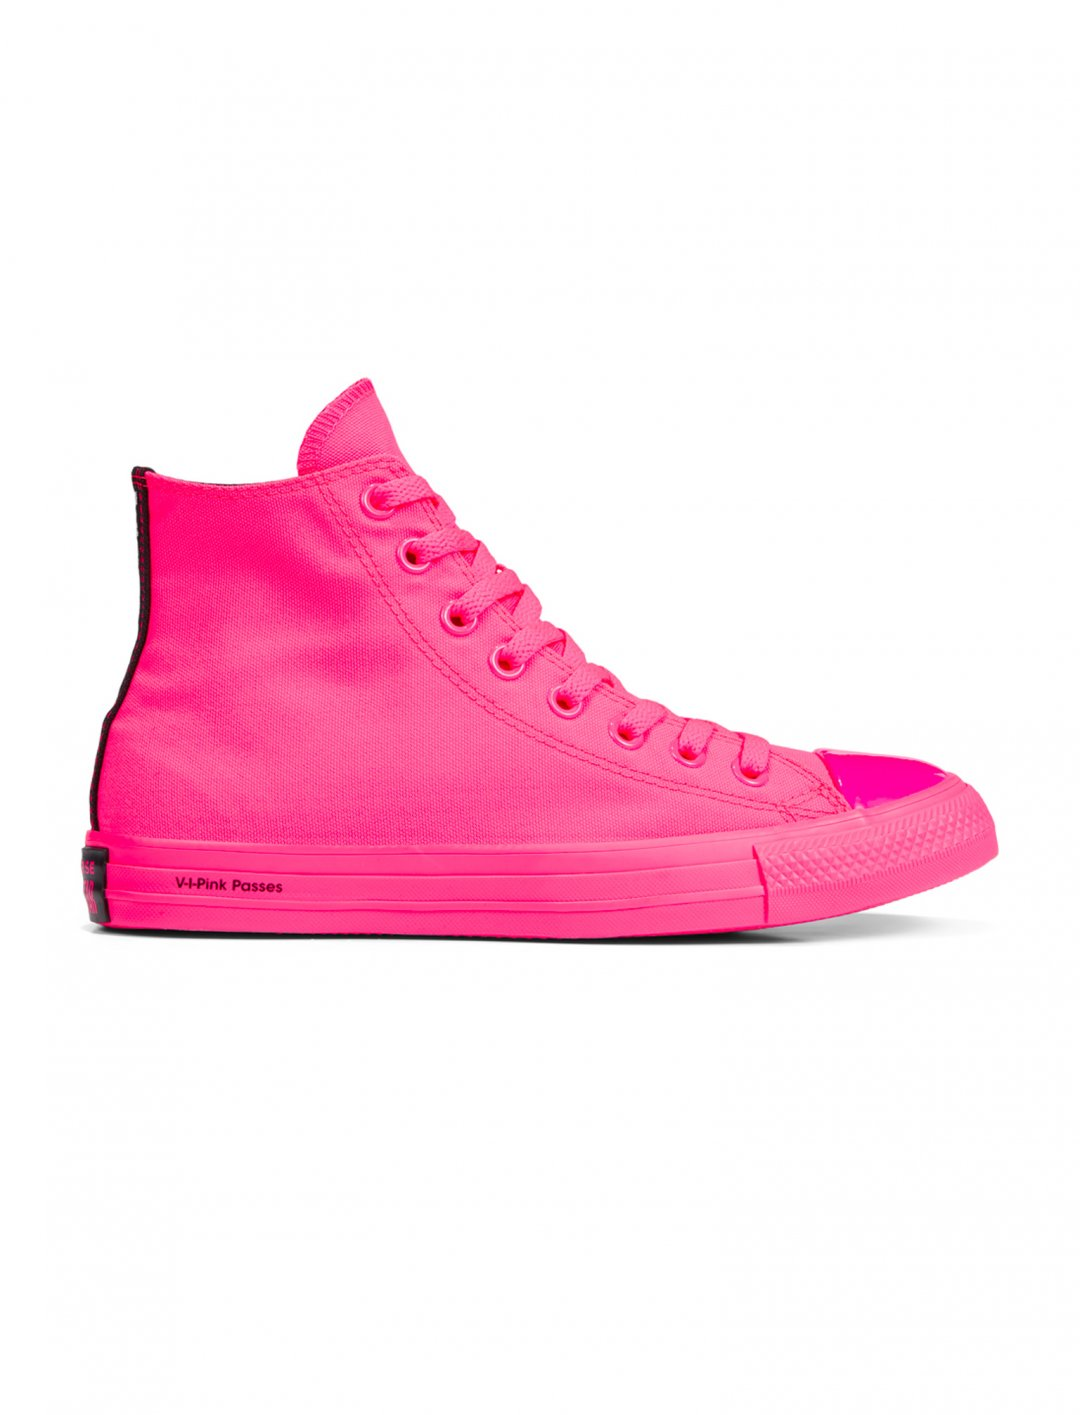 60df84c44c31 Chuck Taylor All Star High Top Trainers, Neon Pink, Converse x OPI